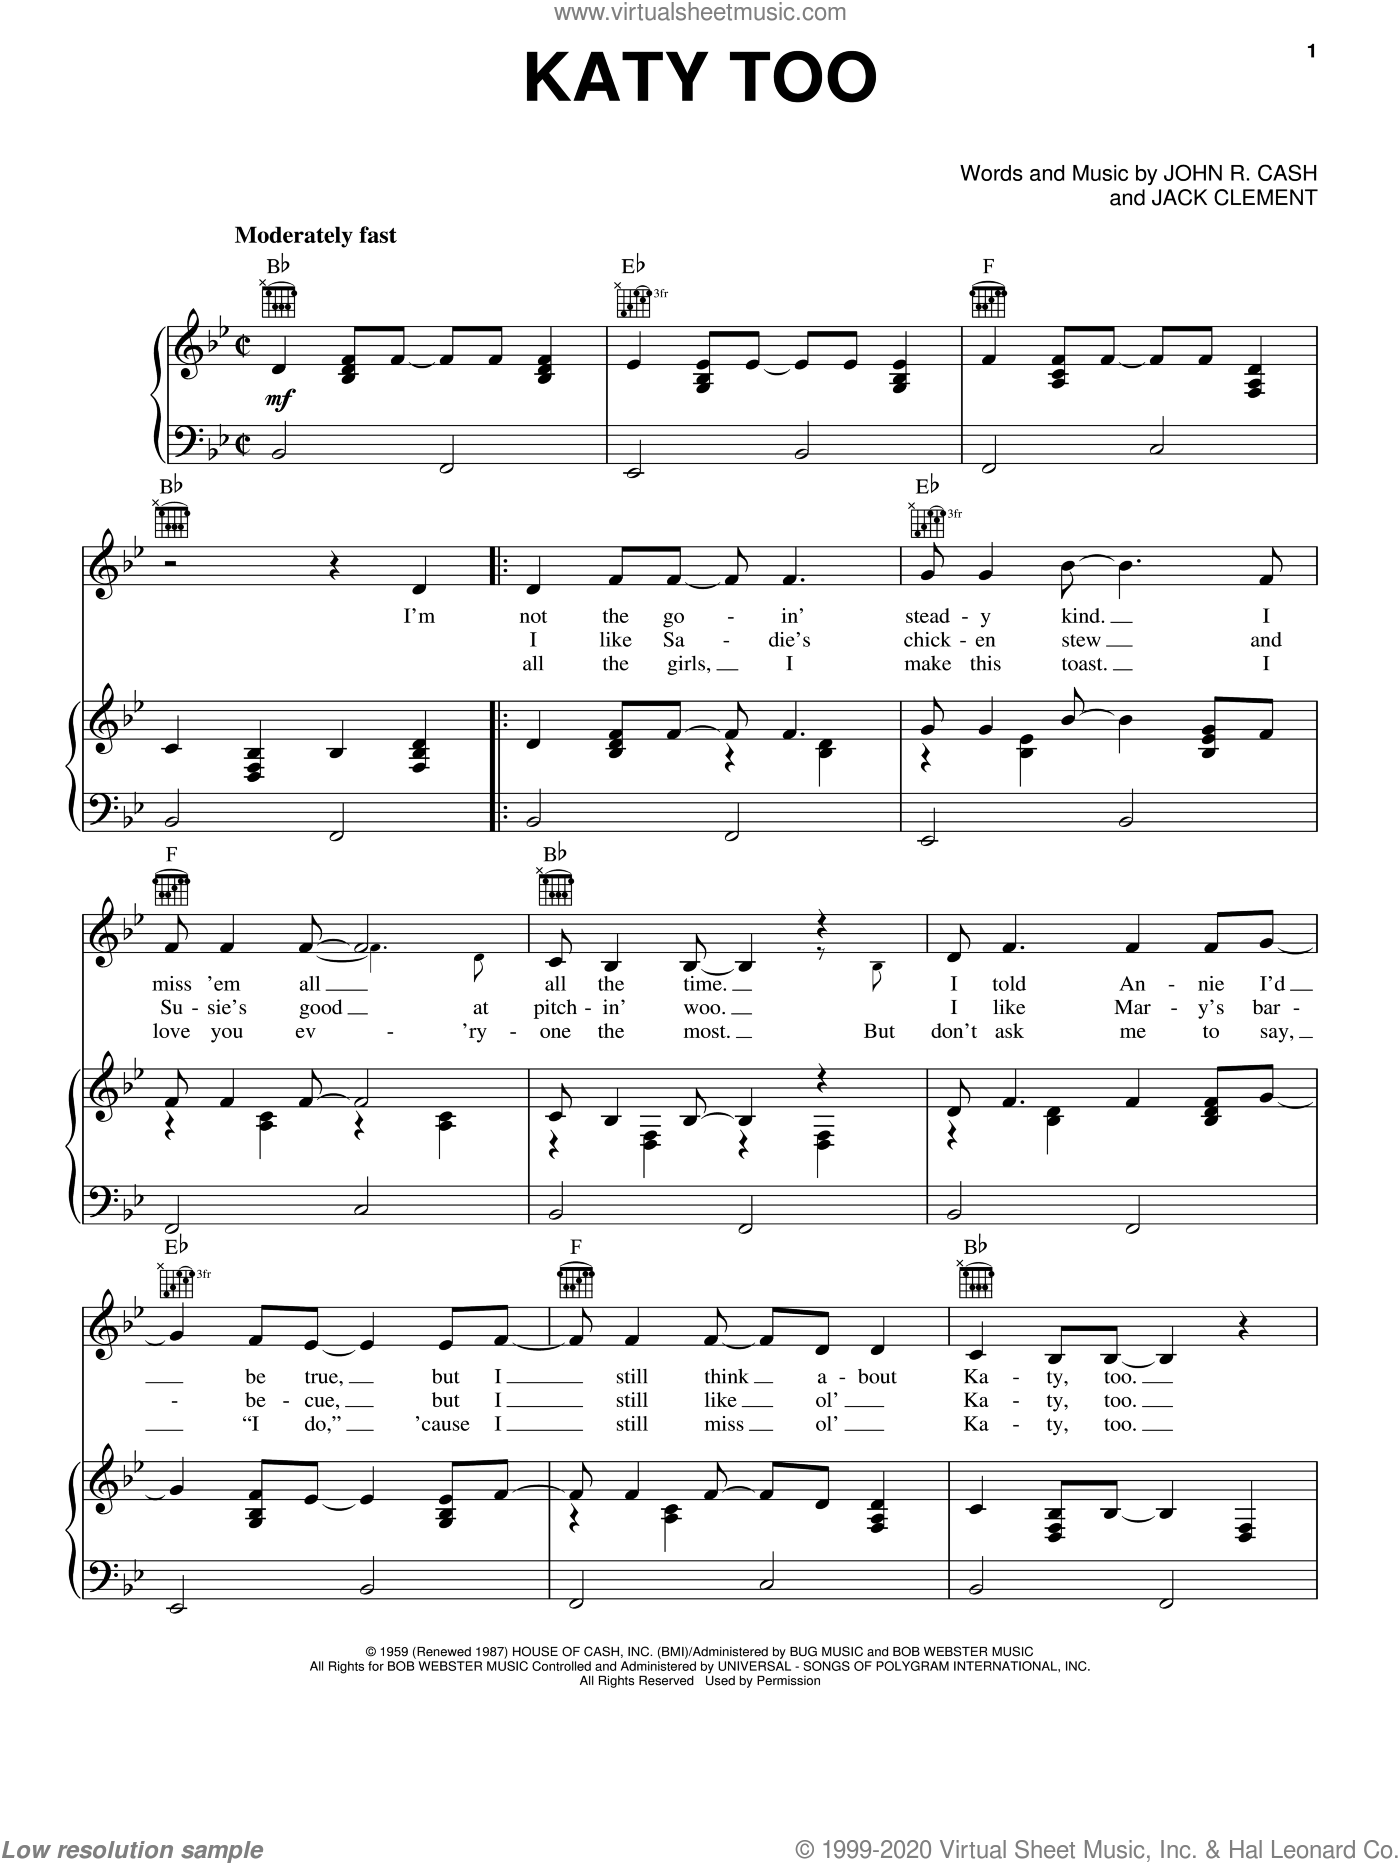 Katy Too sheet music for voice, piano or guitar by Johnny Cash and Jack Clement, intermediate skill level